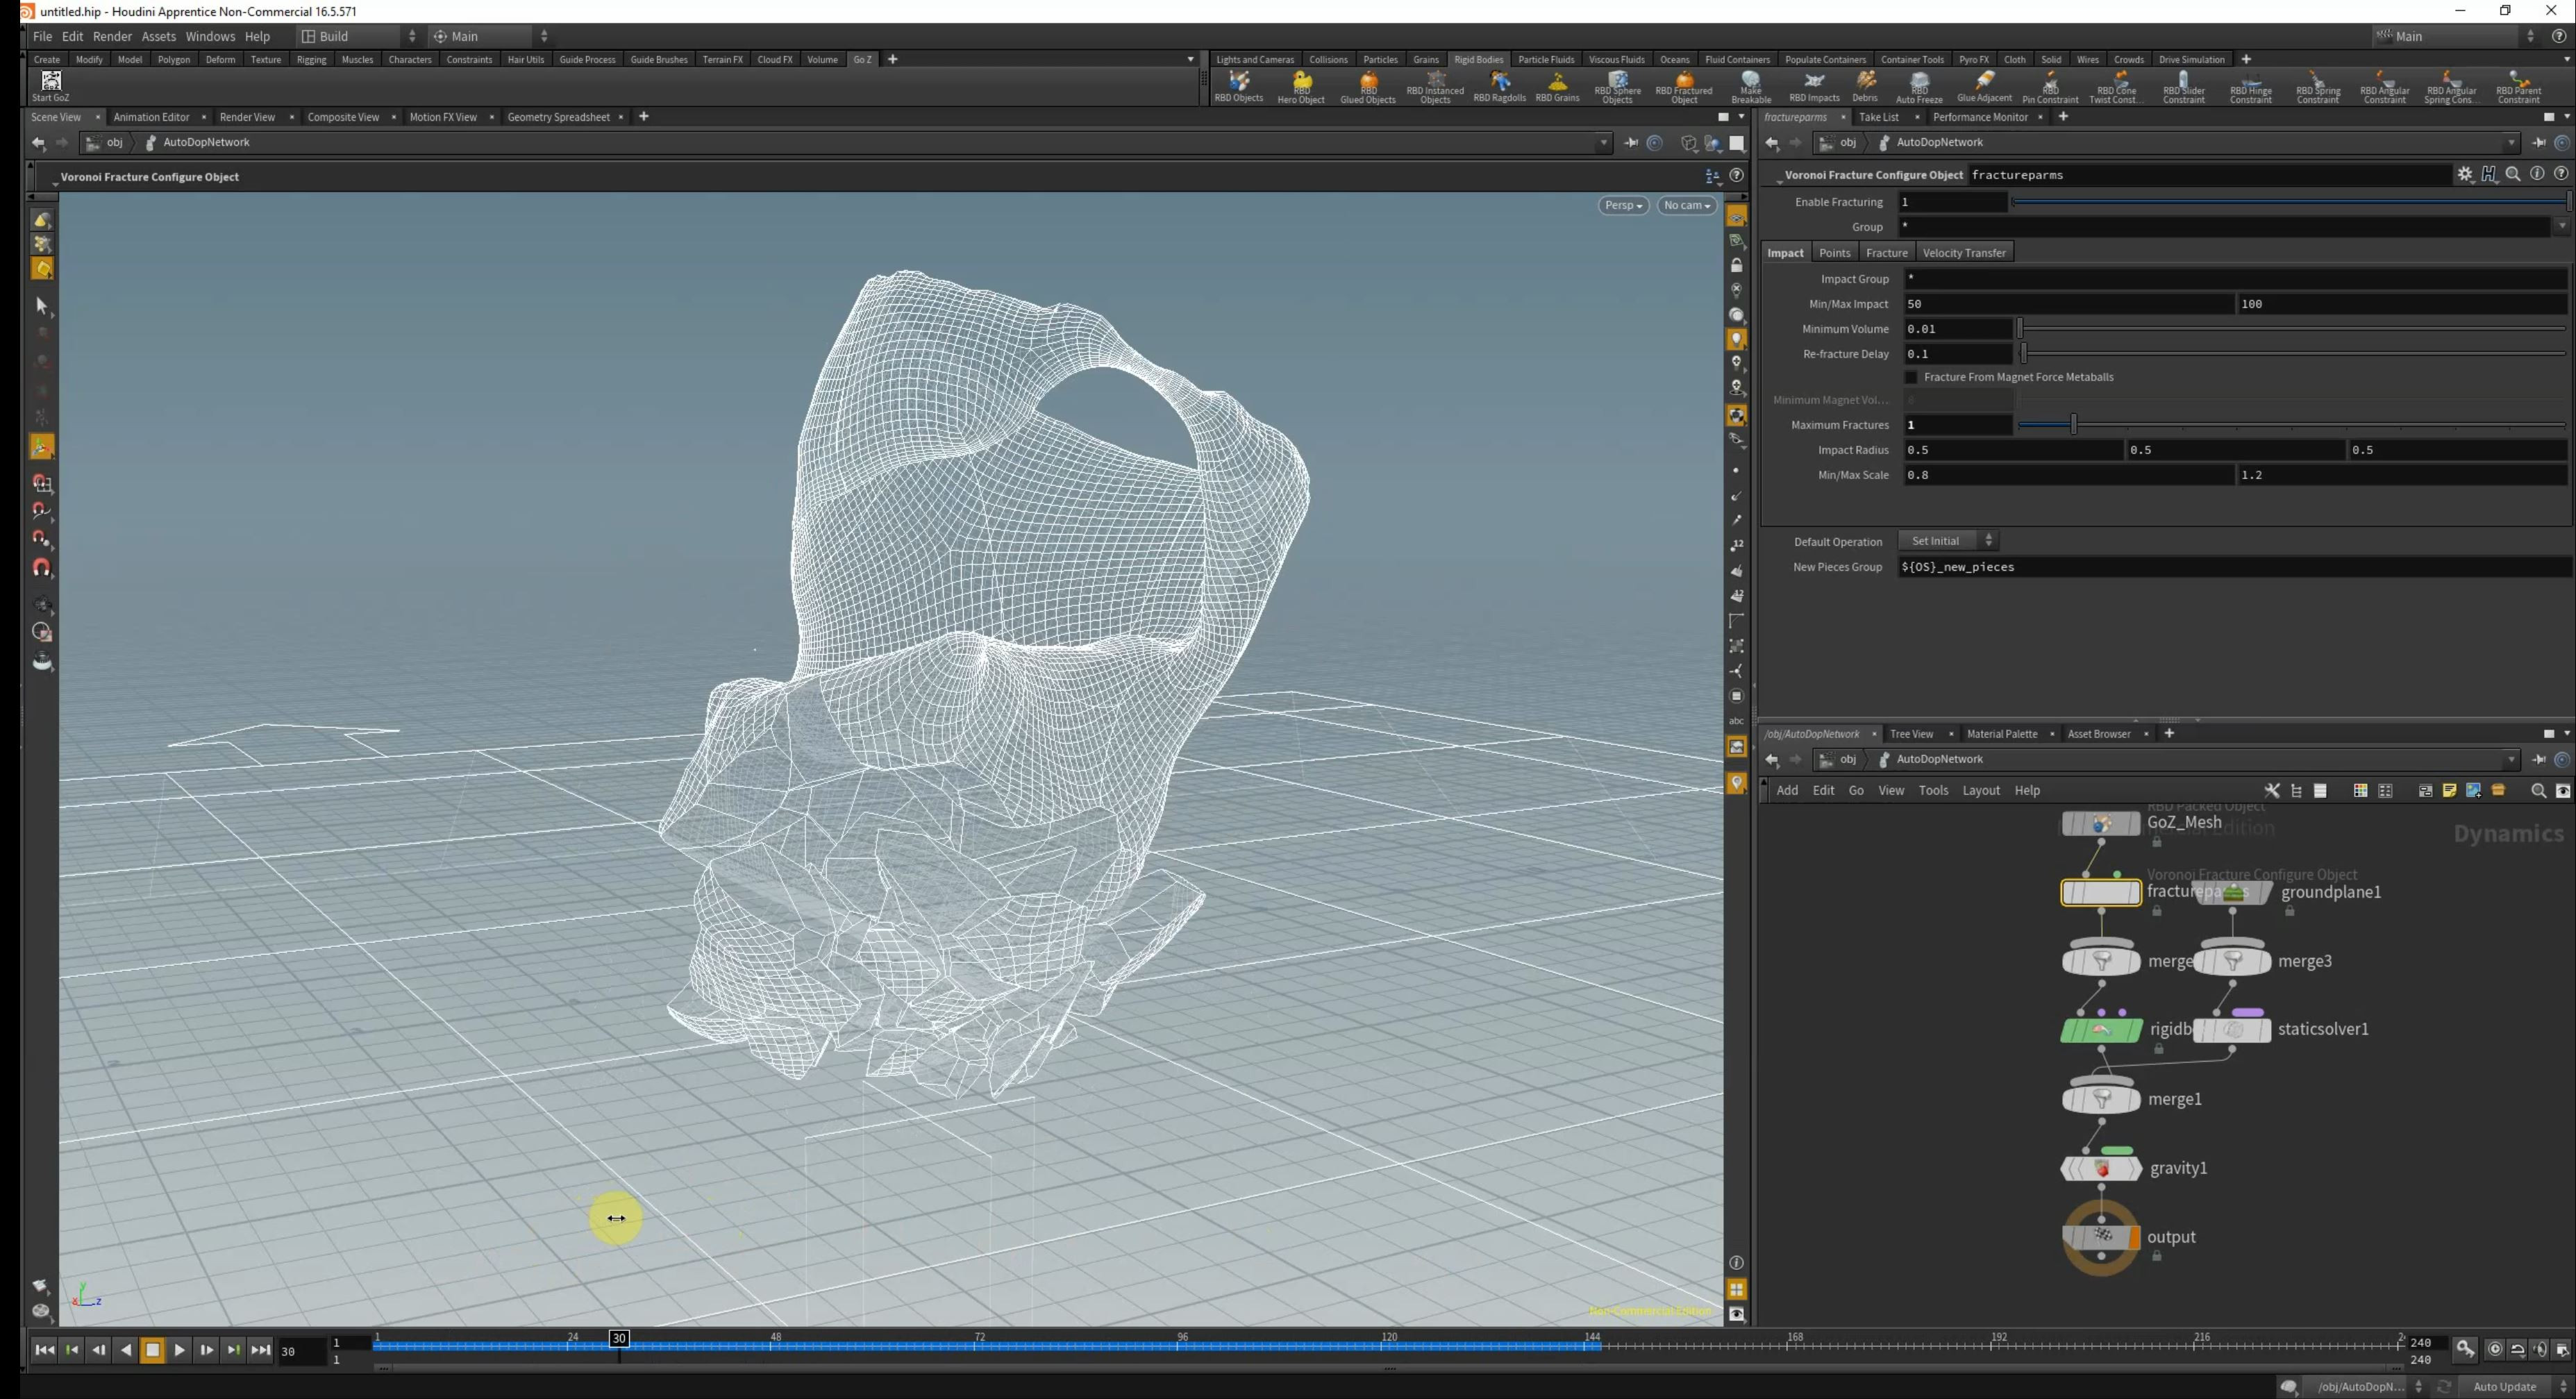 Mesh imported to houdini, beginning to explore shatter sims.